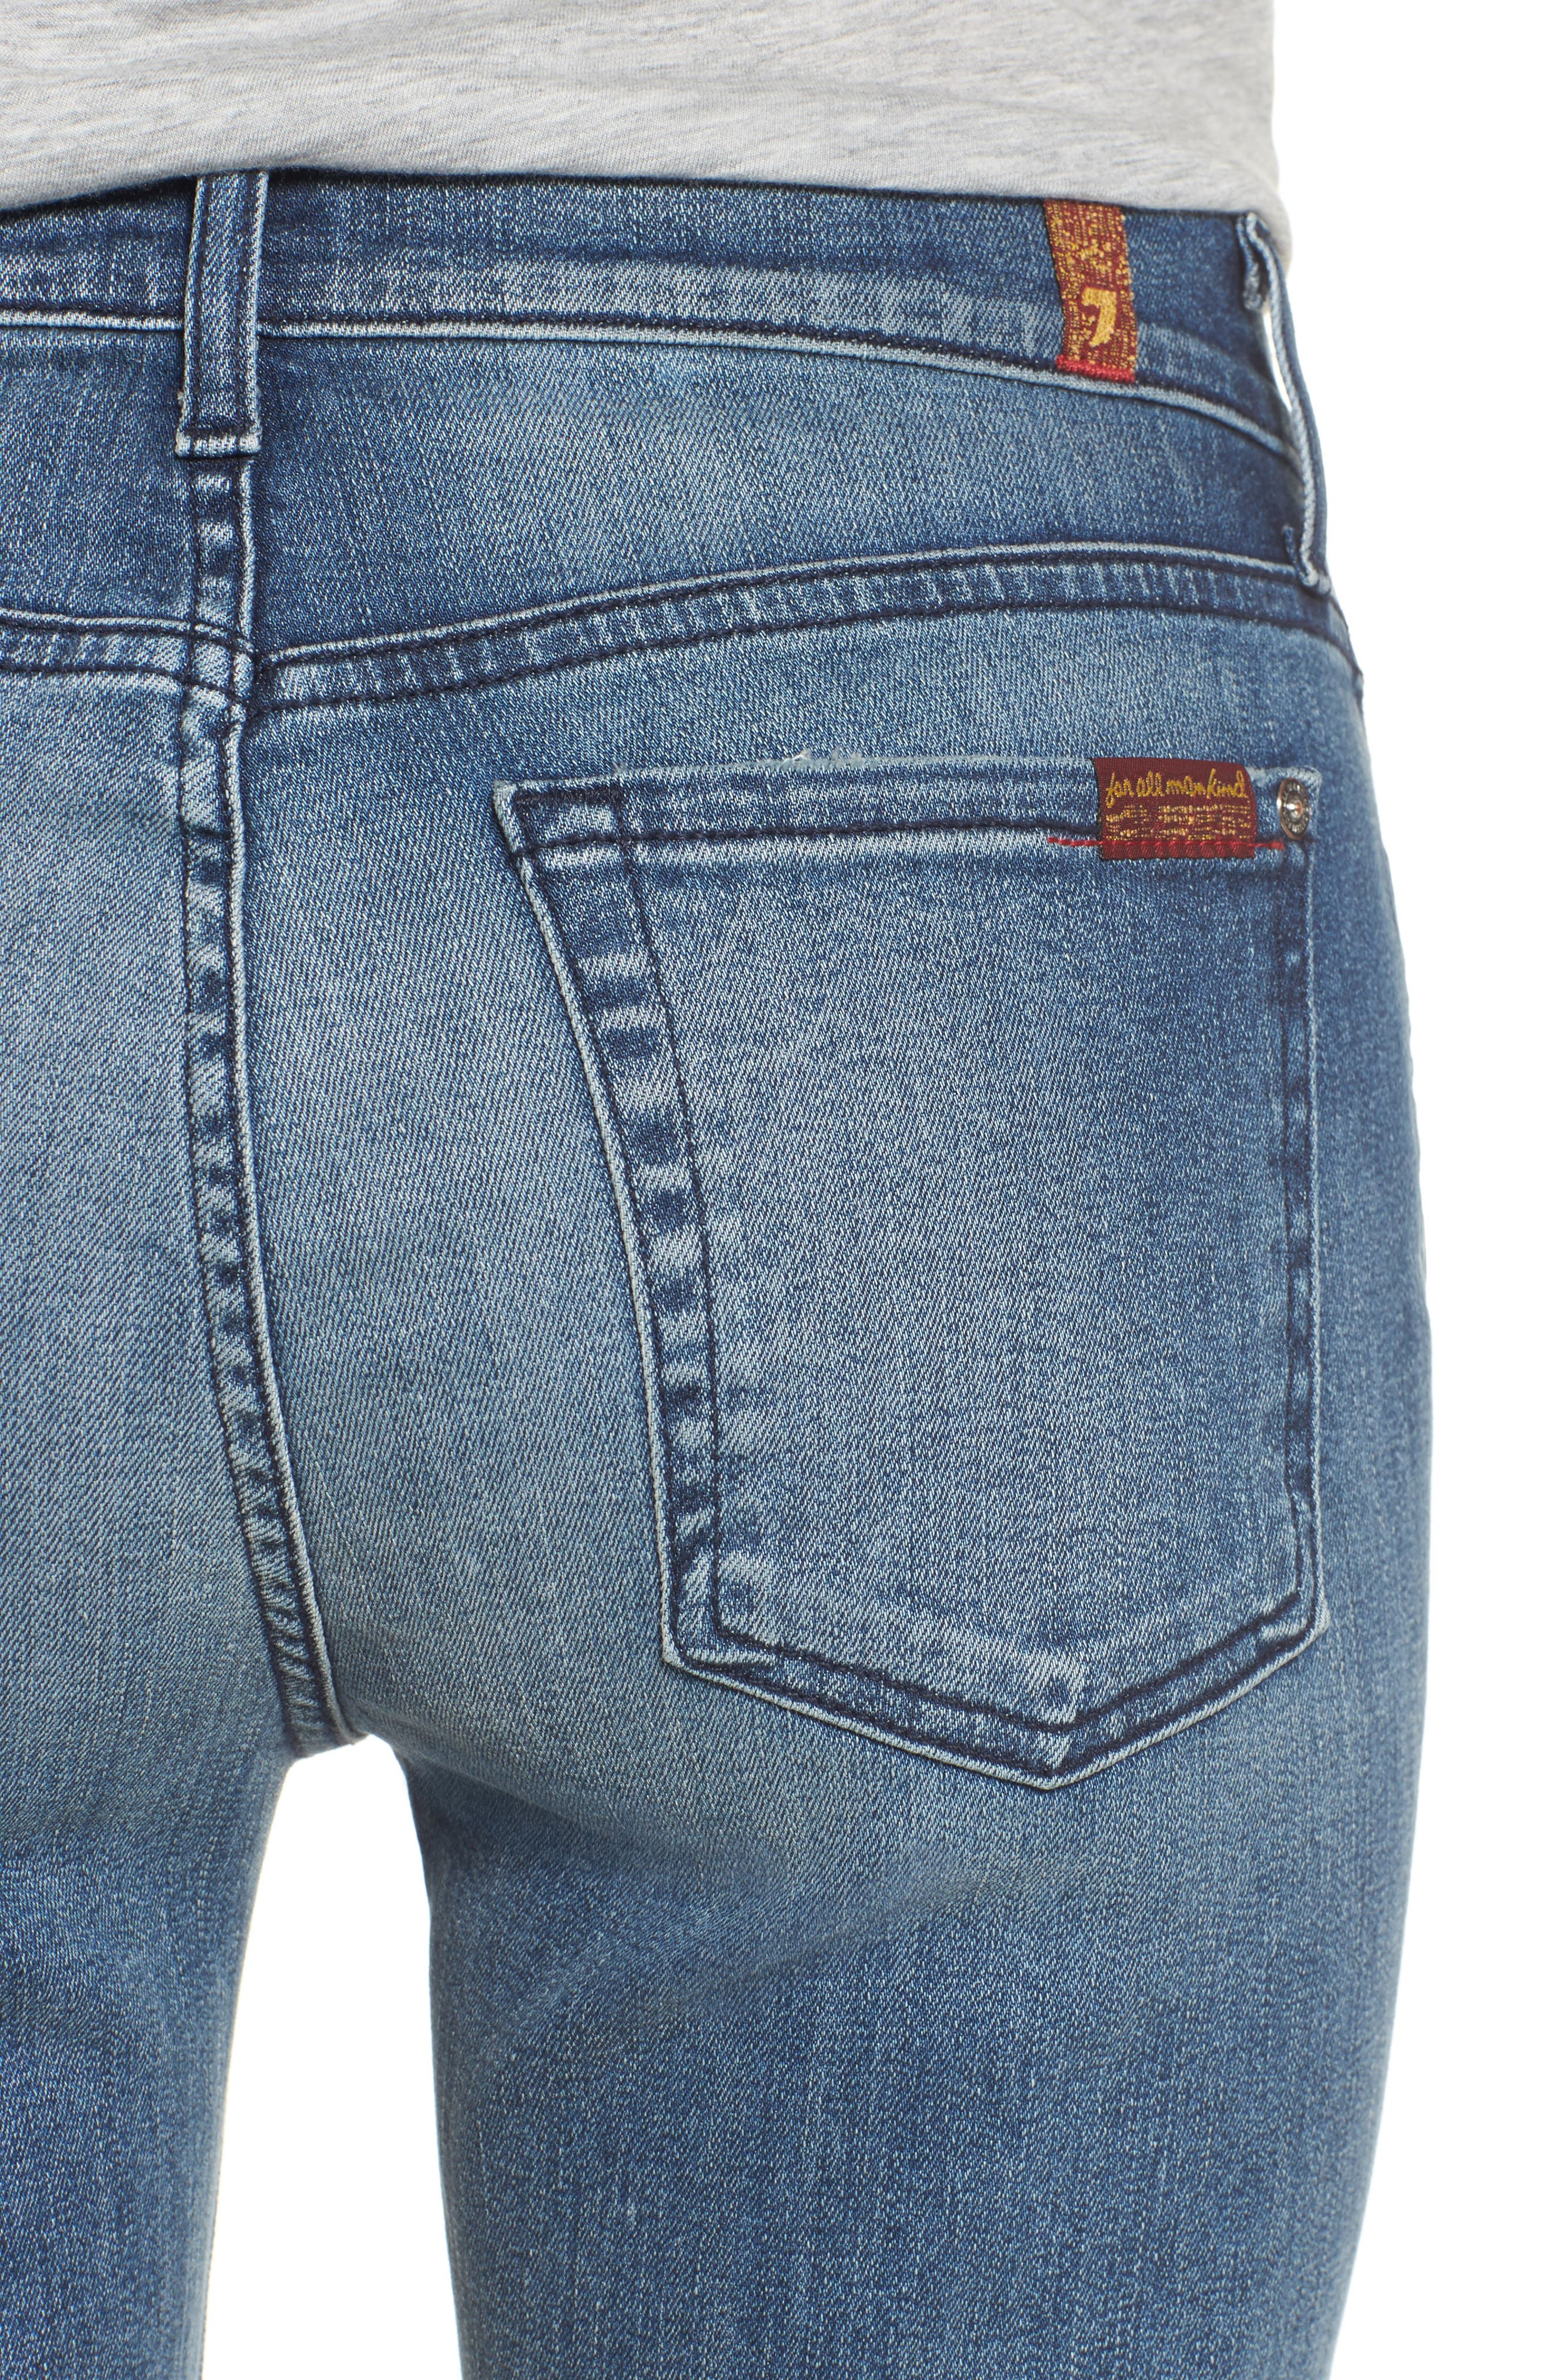 Alternate Image 4  - 7 For All Mankind® Crop Bootcut Jeans (Wall Street Heritage)